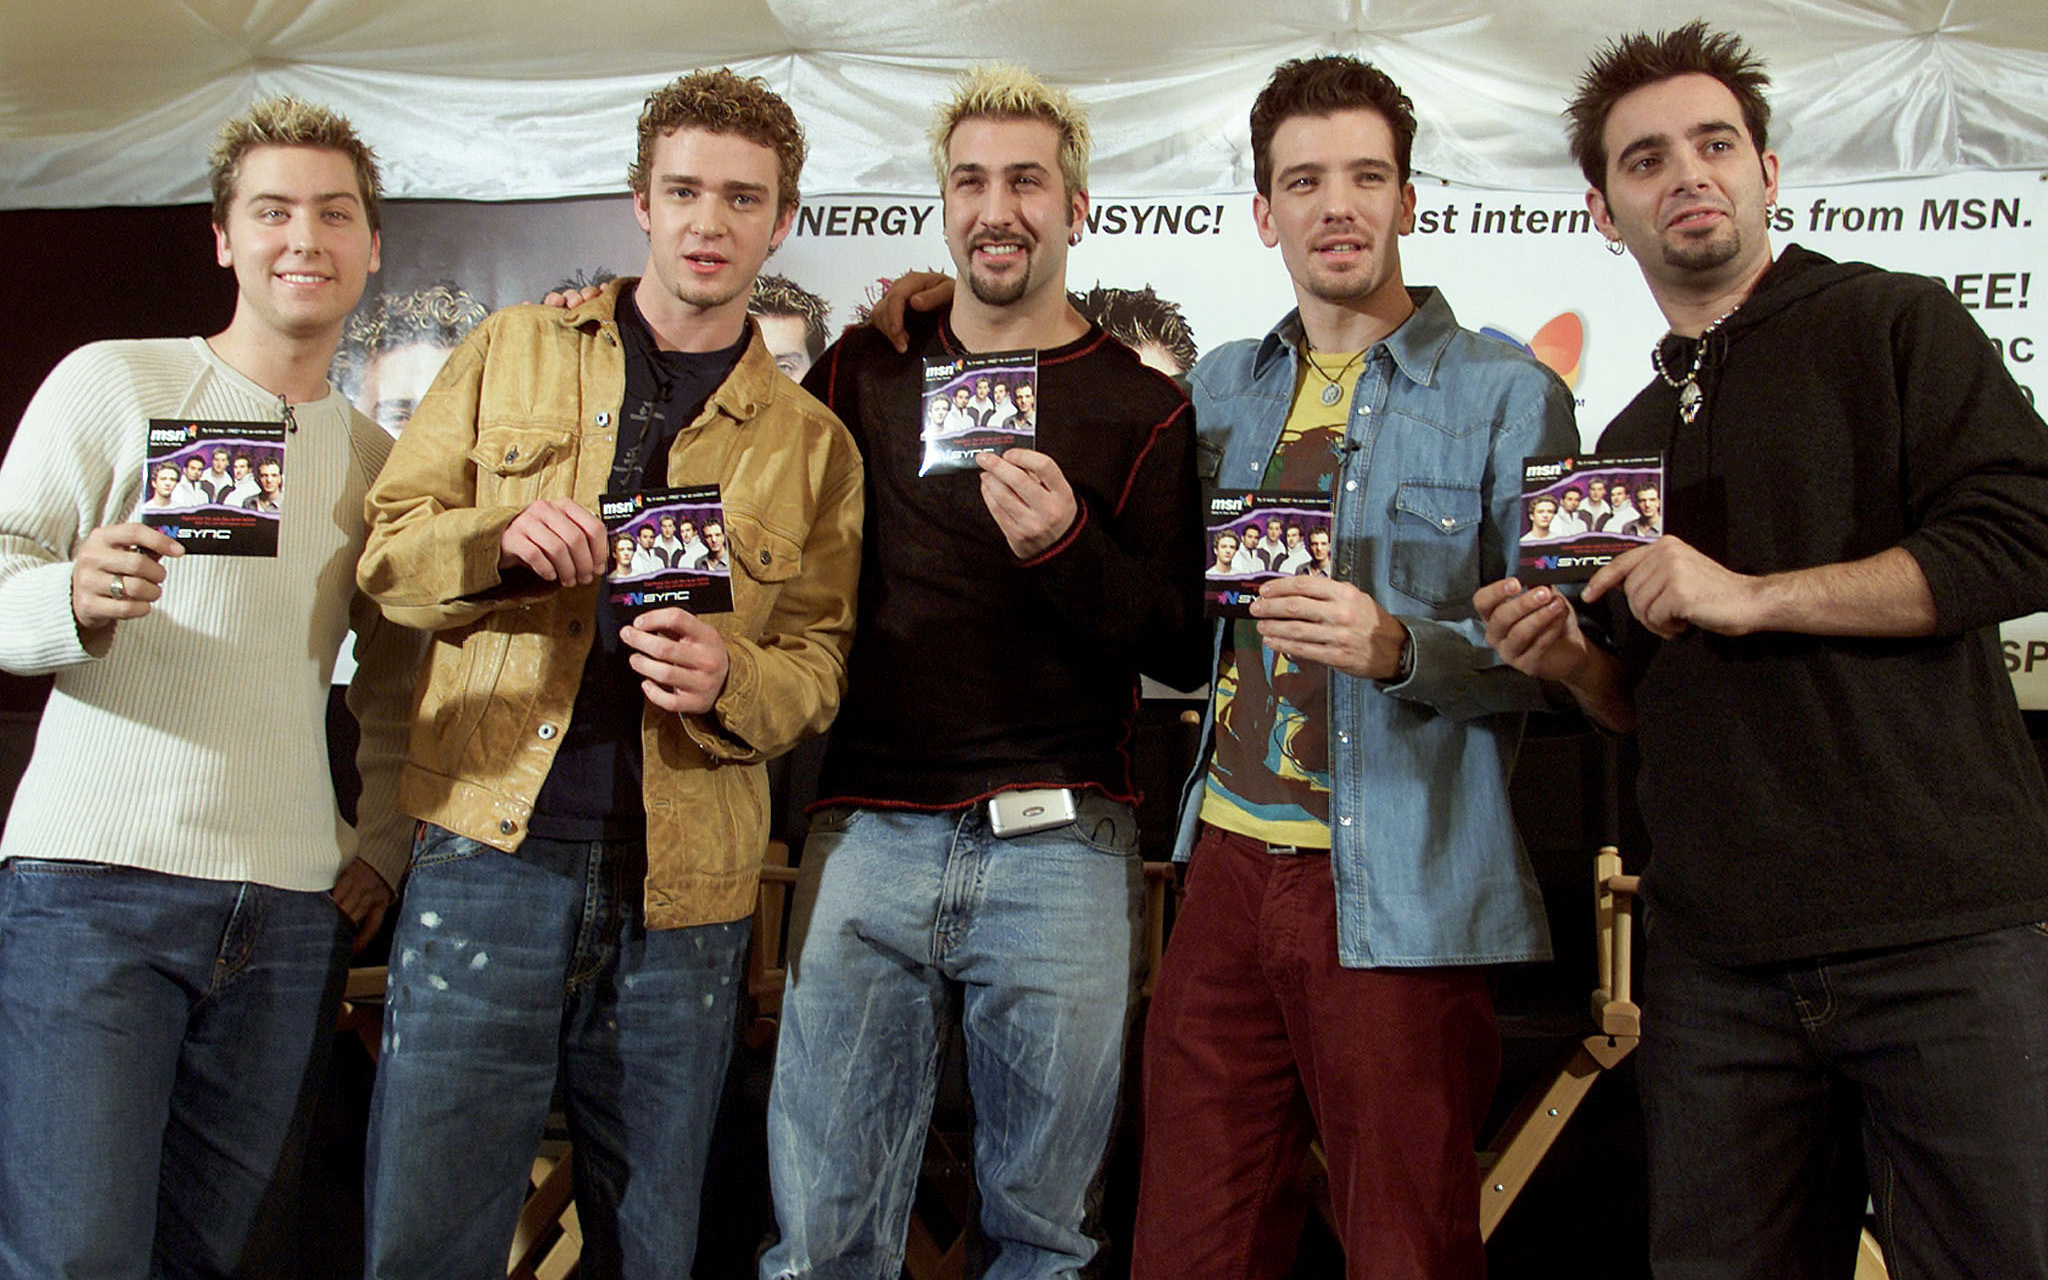 N'Sync promoting their new MSN site